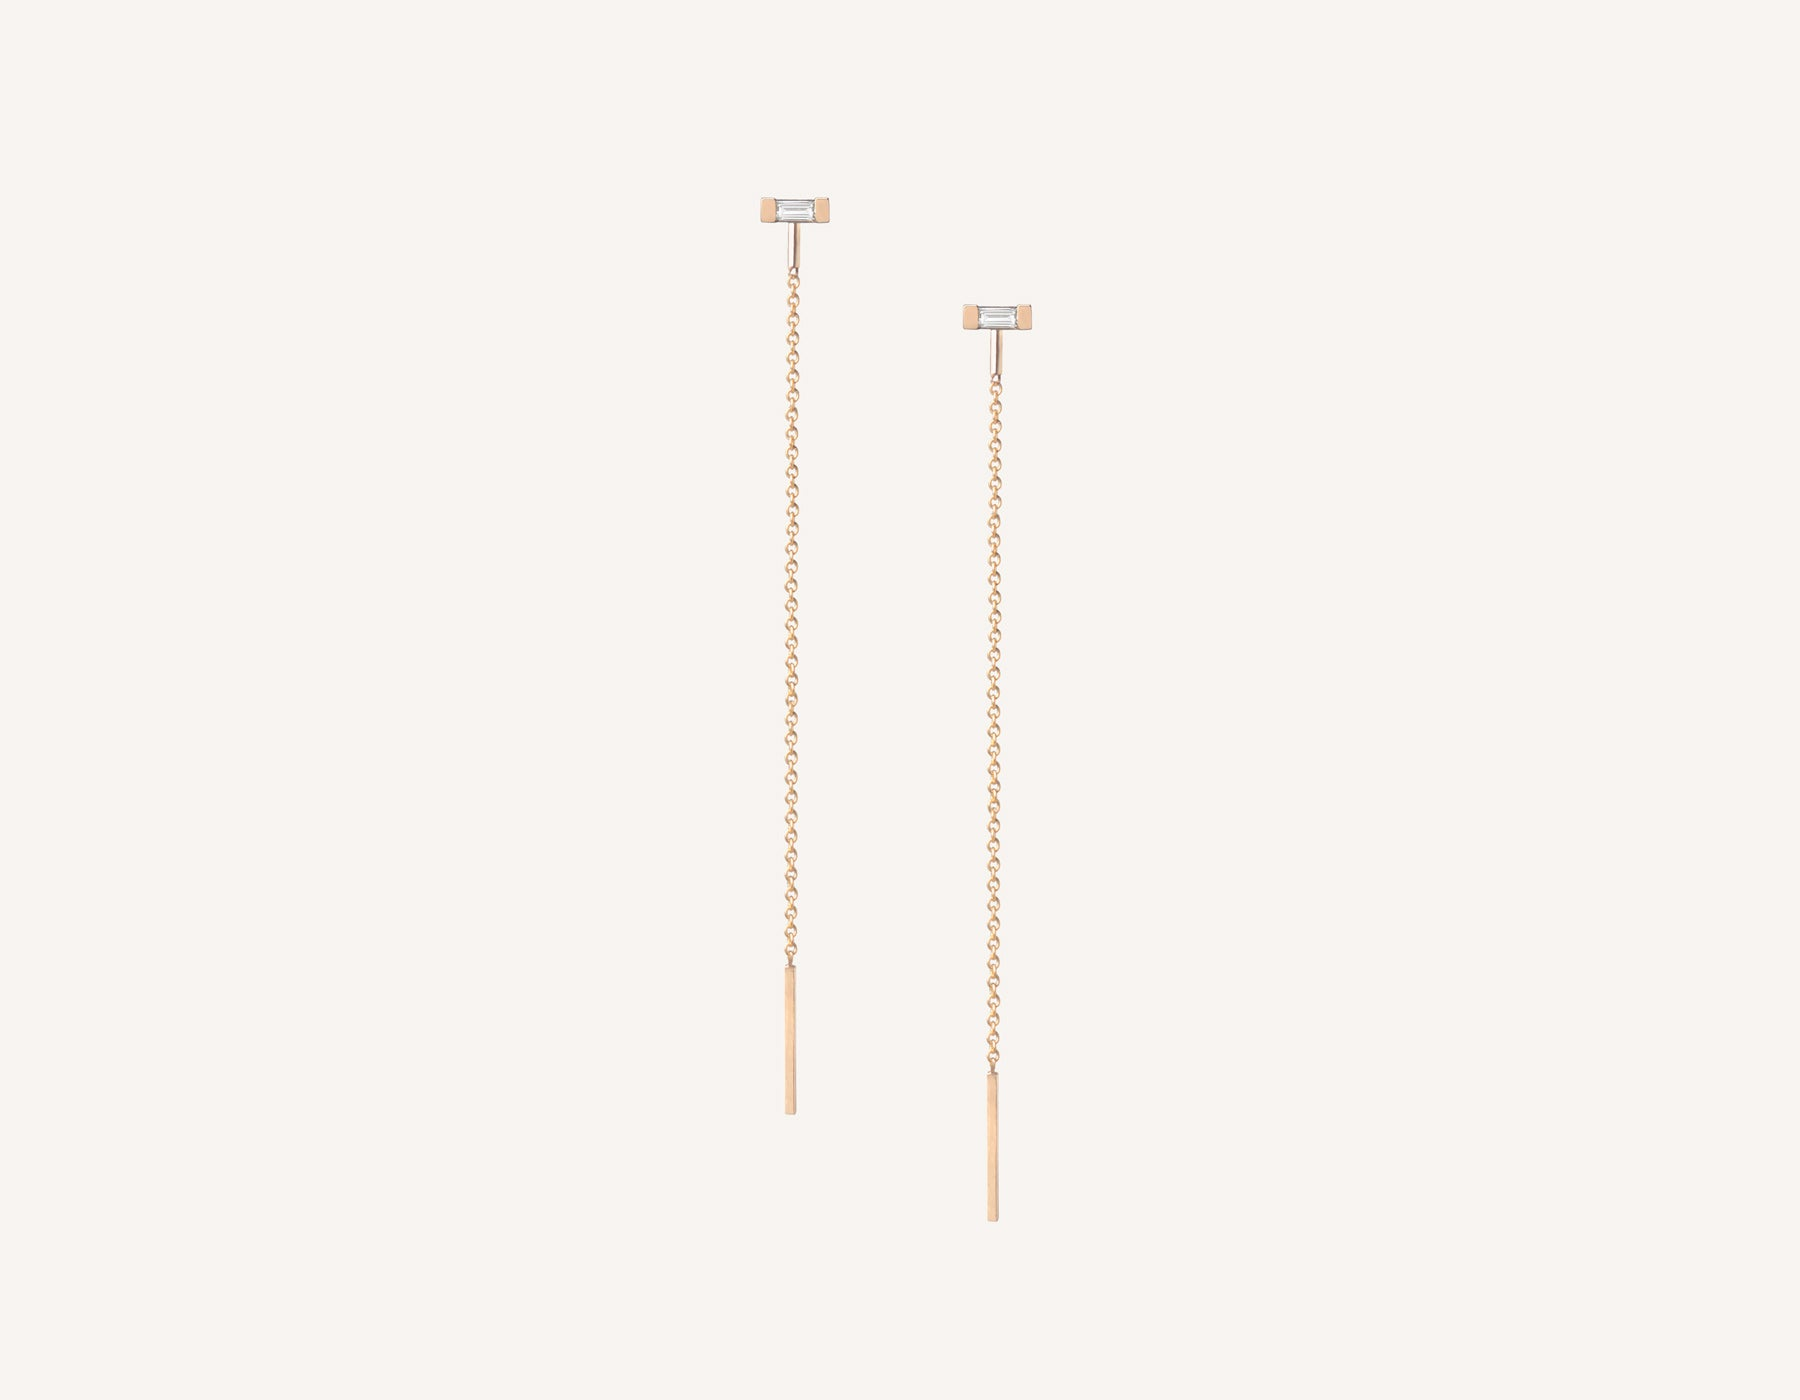 Vrai & oro minimalist modern 14k solid gold Baguette Diamond Line threader chain earrings, 14K Rose Gold